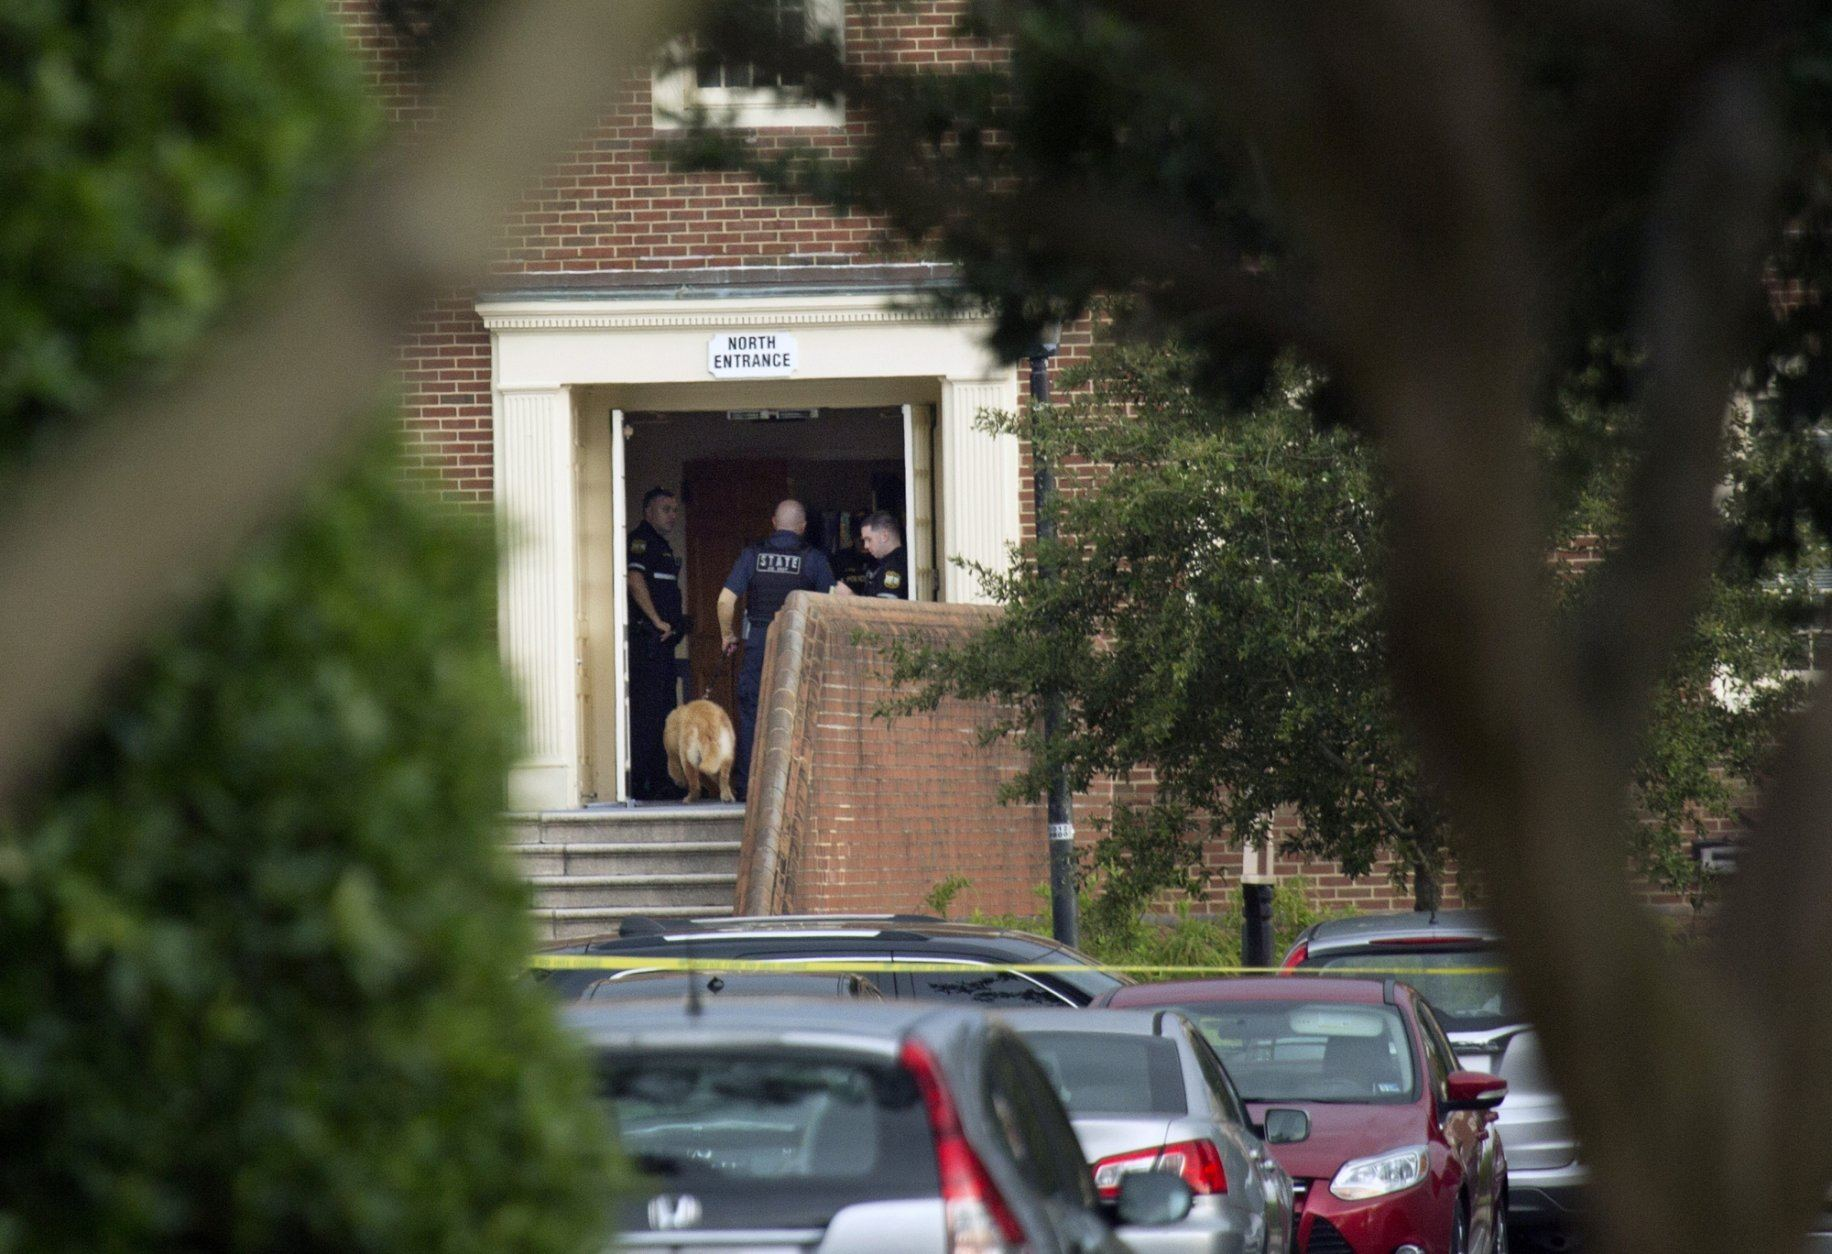 Police work the scene where eleven people were killed during a mass shooting at the Virginia Beach city public works building, Friday, May 31, 2019 in Virginia Beach, Va. A longtime, disgruntled city employee opened fire at a municipal building in Virginia Beach on Friday, killing 11 people before police fatally shot him, authorities said.  Six other people were wounded in the shooting, including a police officer whose bulletproof vest saved his life, said Virginia Beach Police Chief James Cervera. (L. Todd Spencer/The Virginian-Pilot via AP)